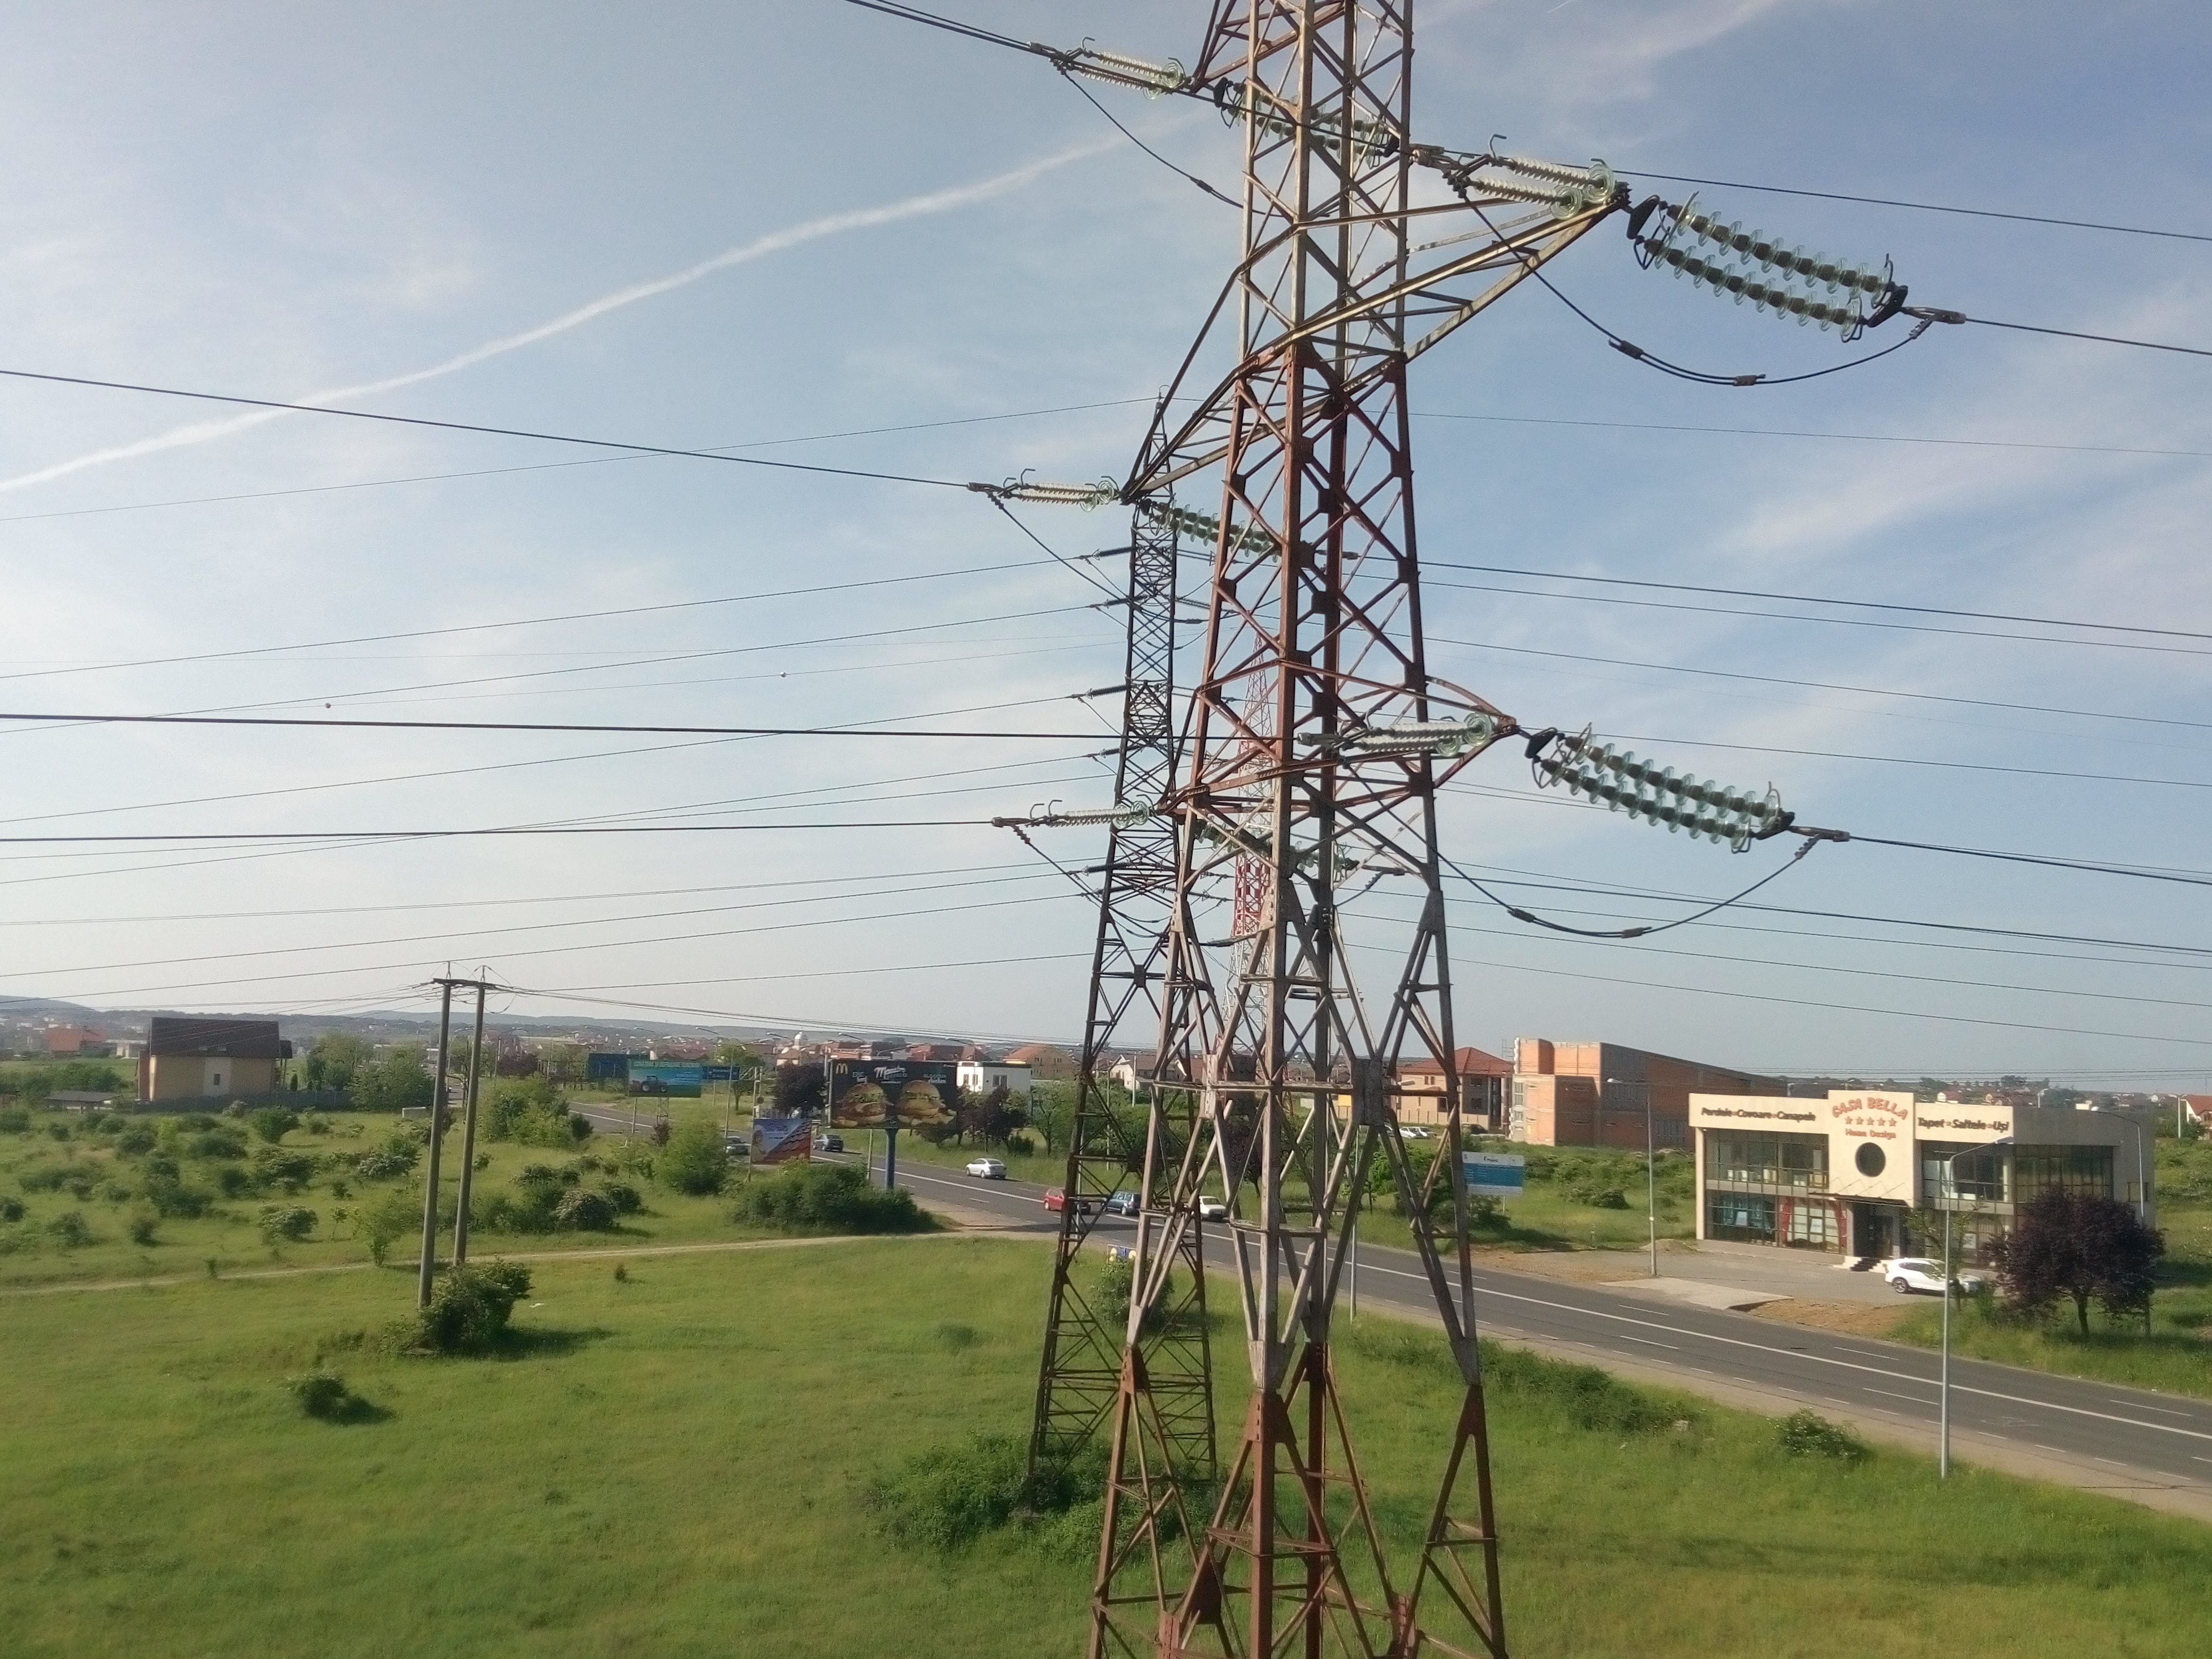 Free stock photo of electric, electric lines